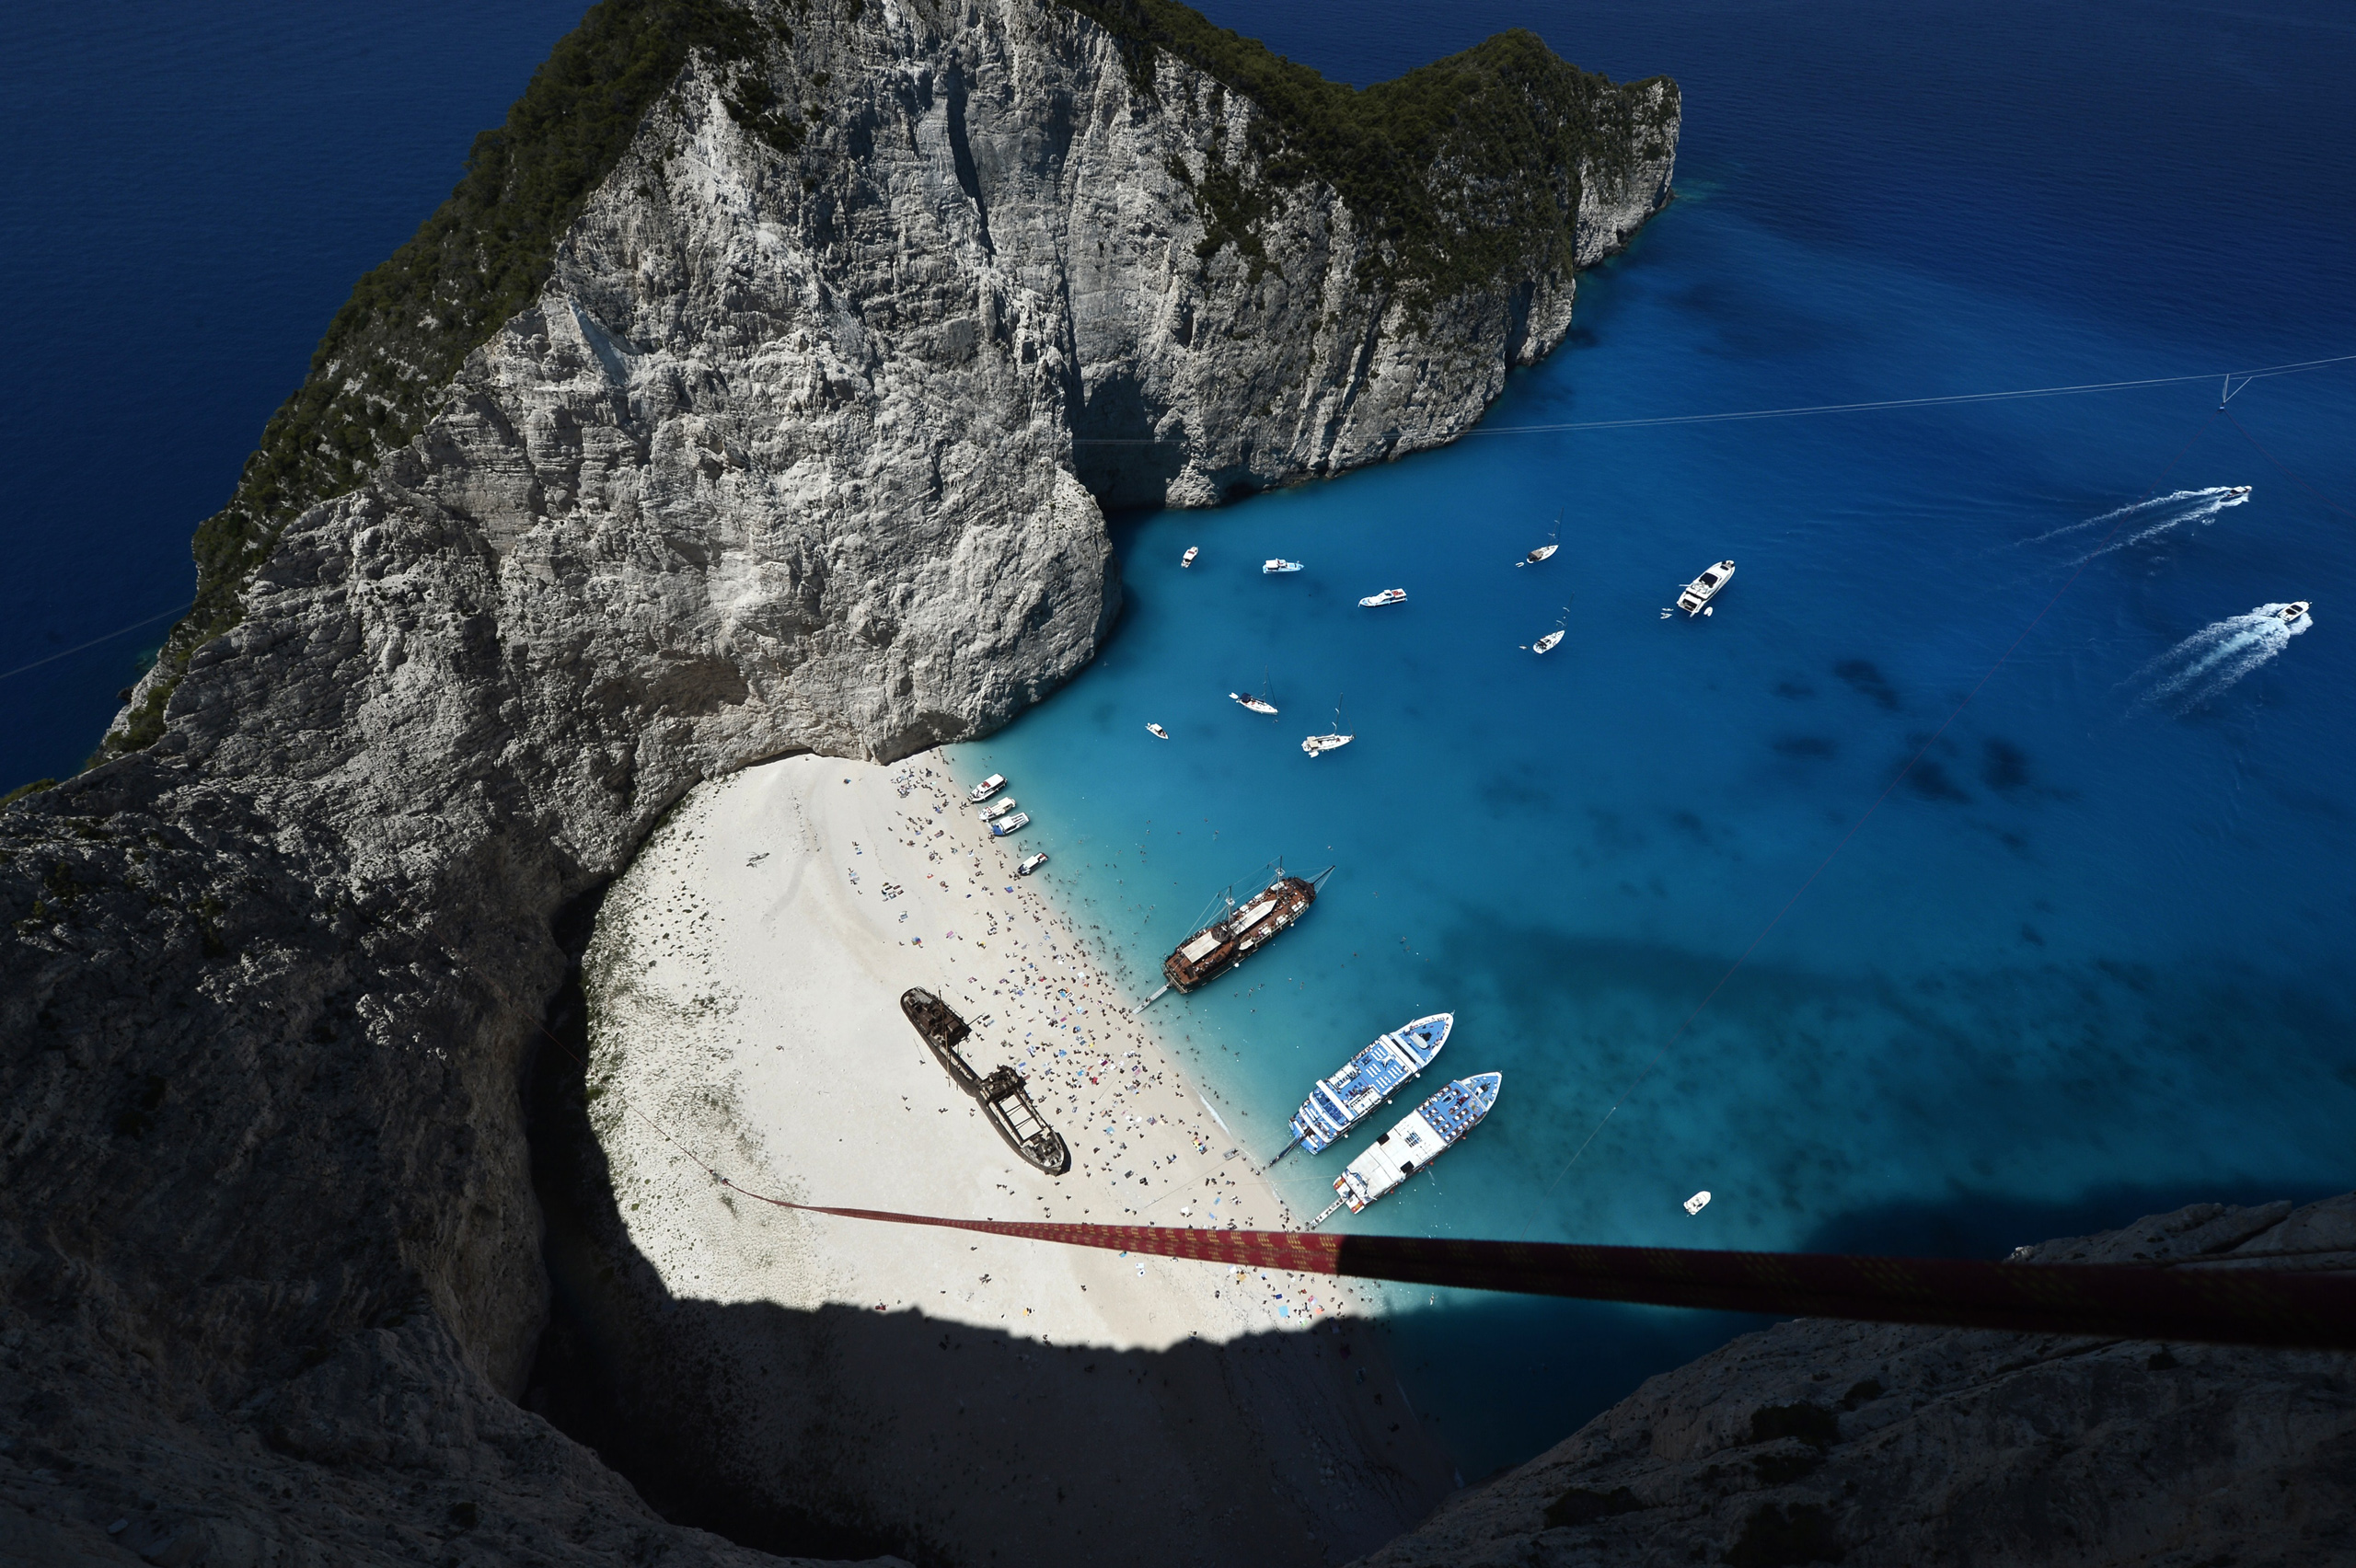 Rugged rocks overlooking the azure waters of Navagio beach on the popular tourist island of Zakynthos, Greece on June 23, 2014.